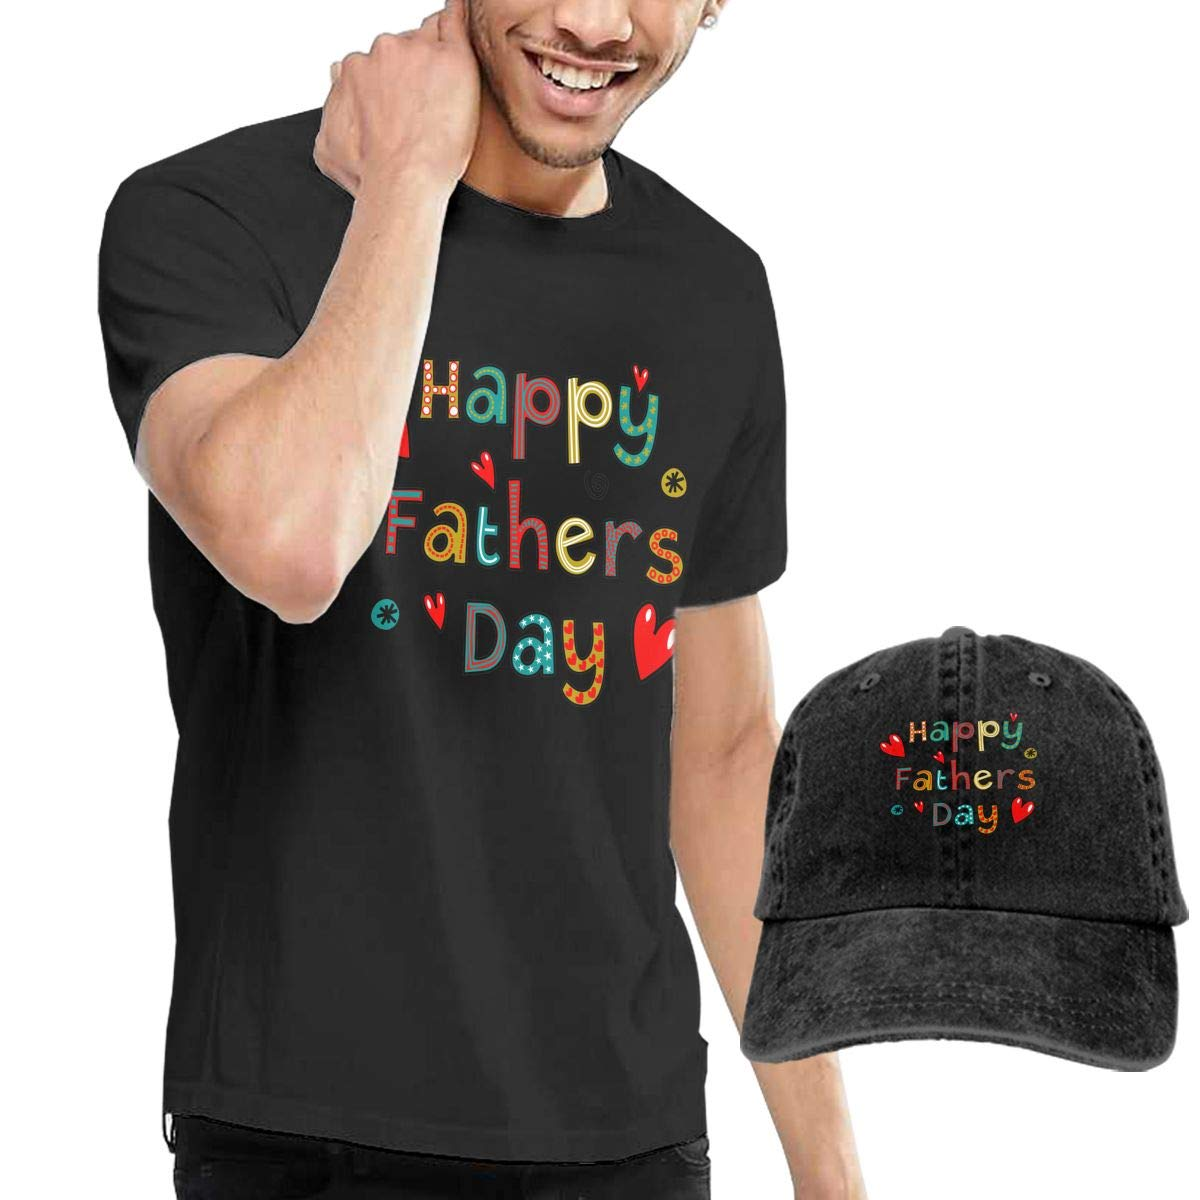 QqZXD Happy Fathers Day Fashion Mens T-Shirt Hats Youth /& Adult T-Shirts